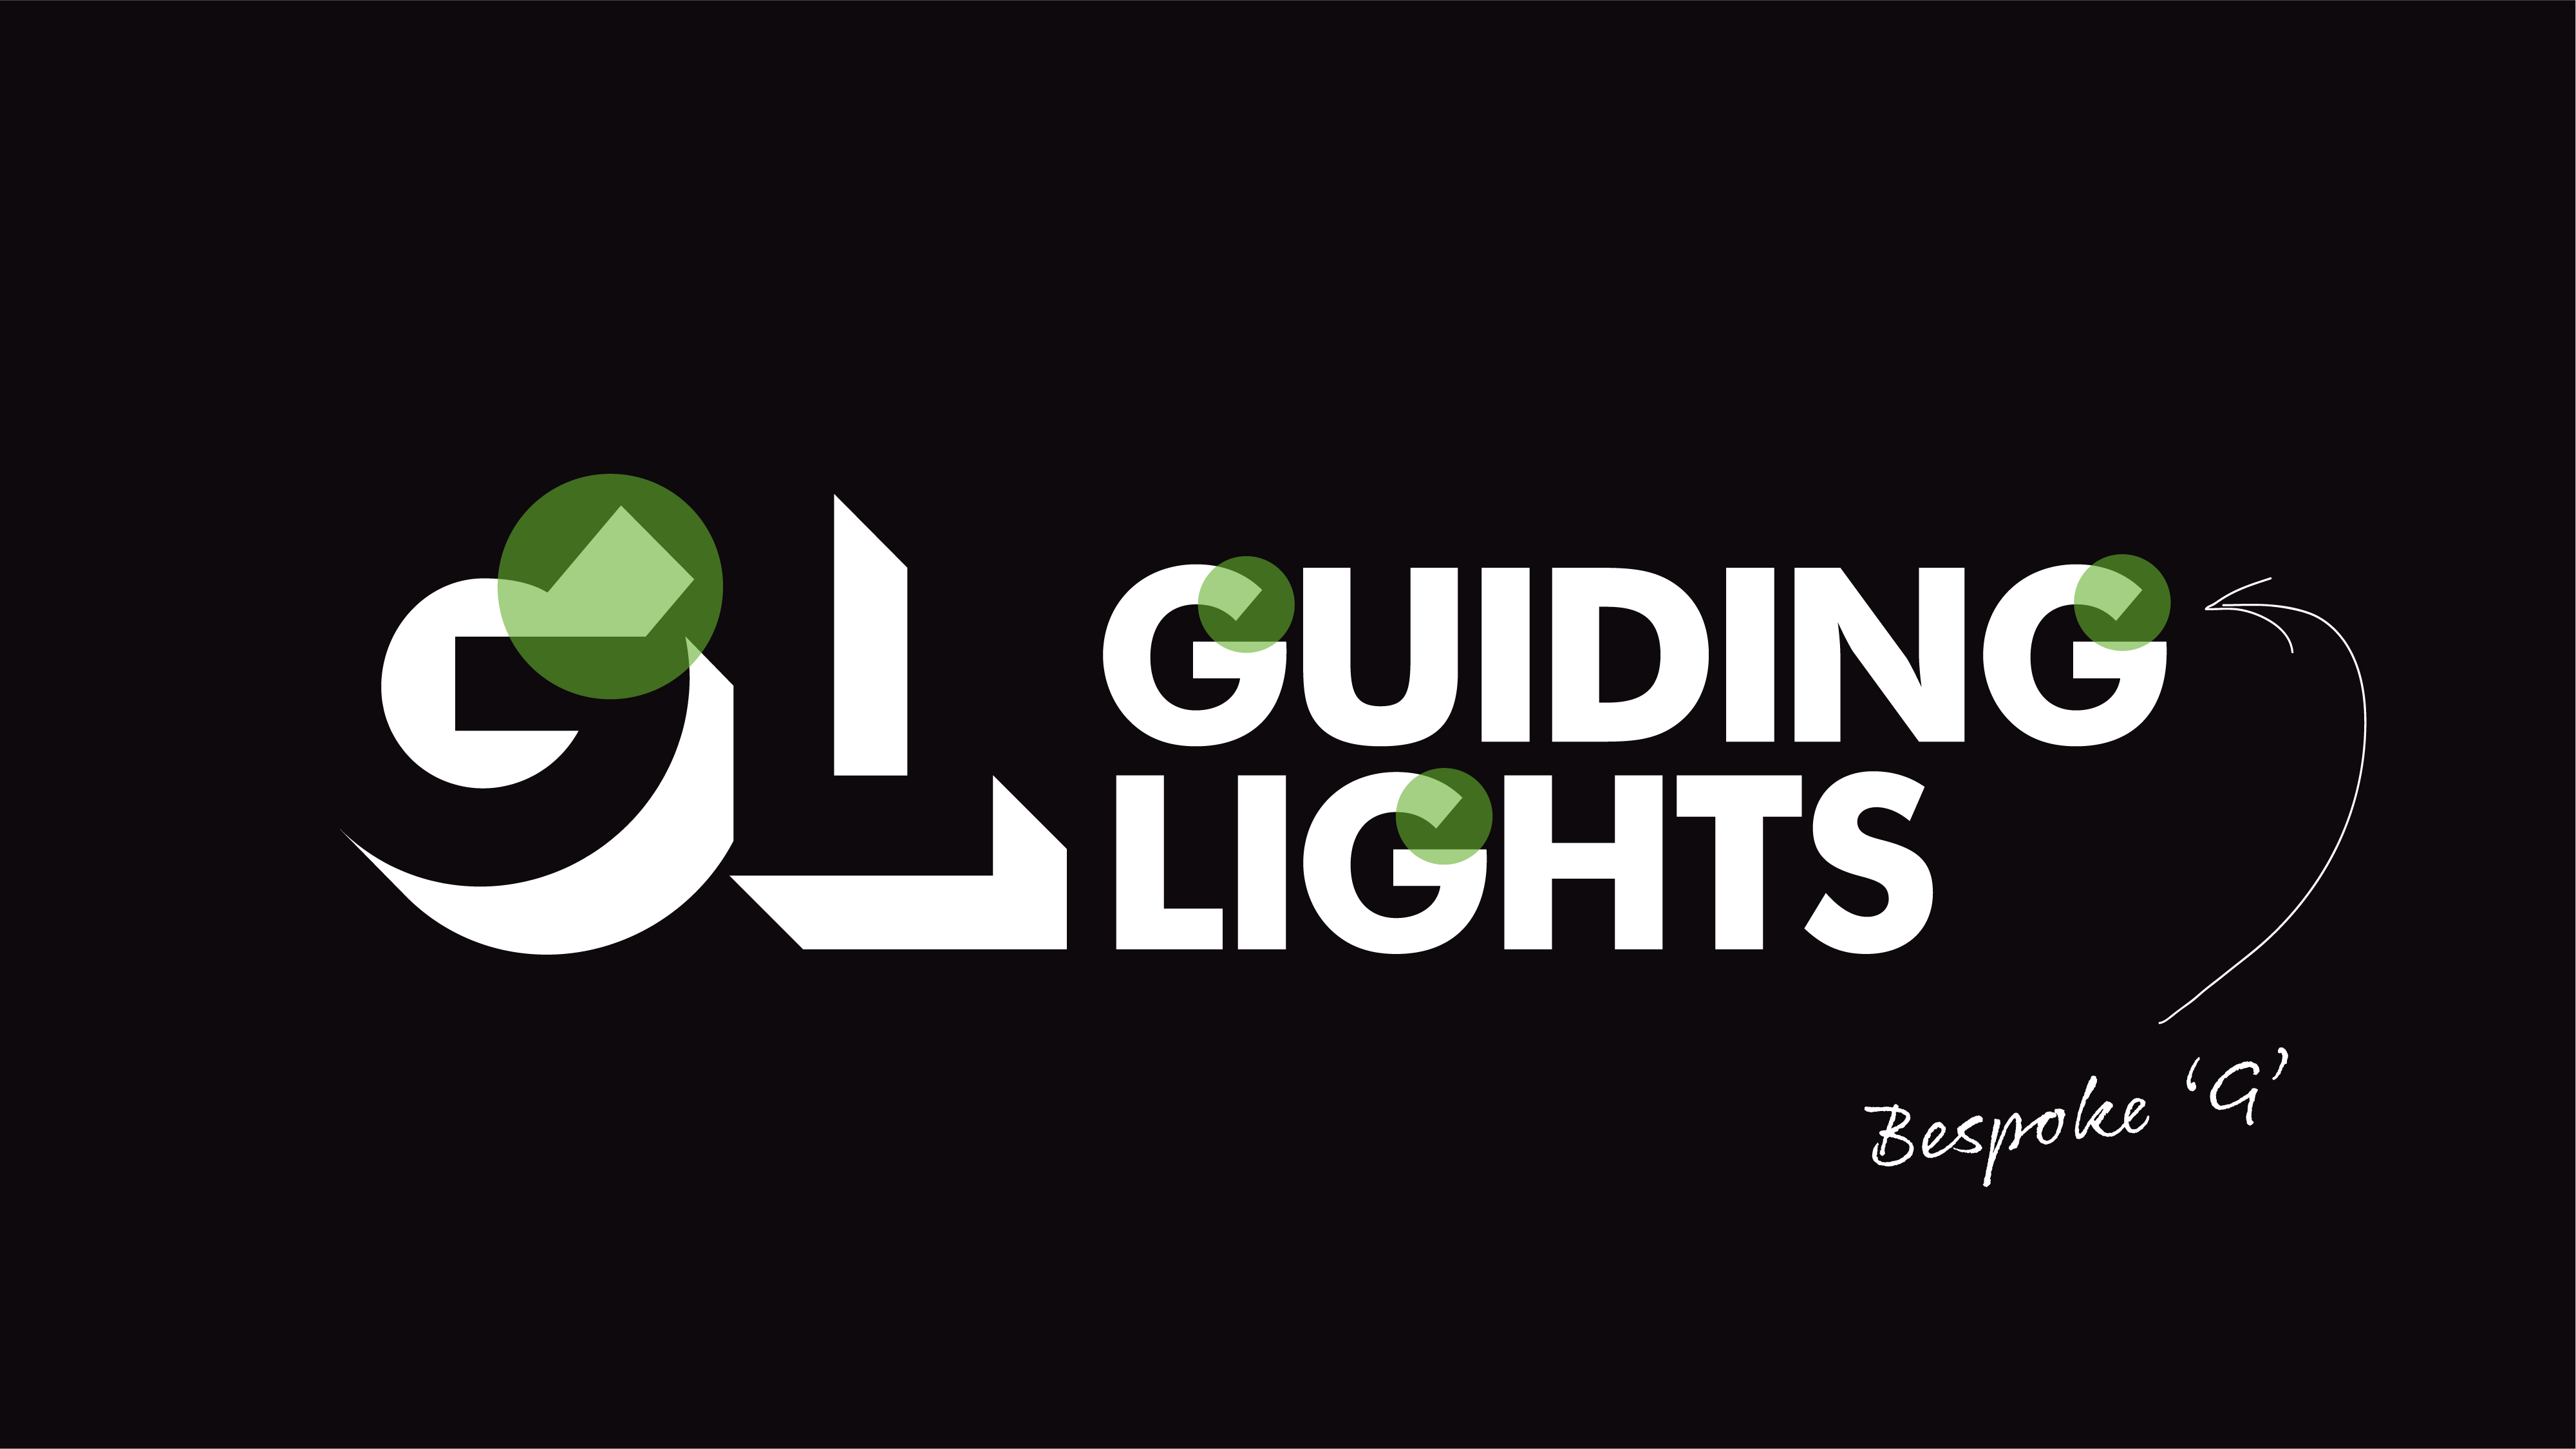 Guiding-Lights-refinement-05